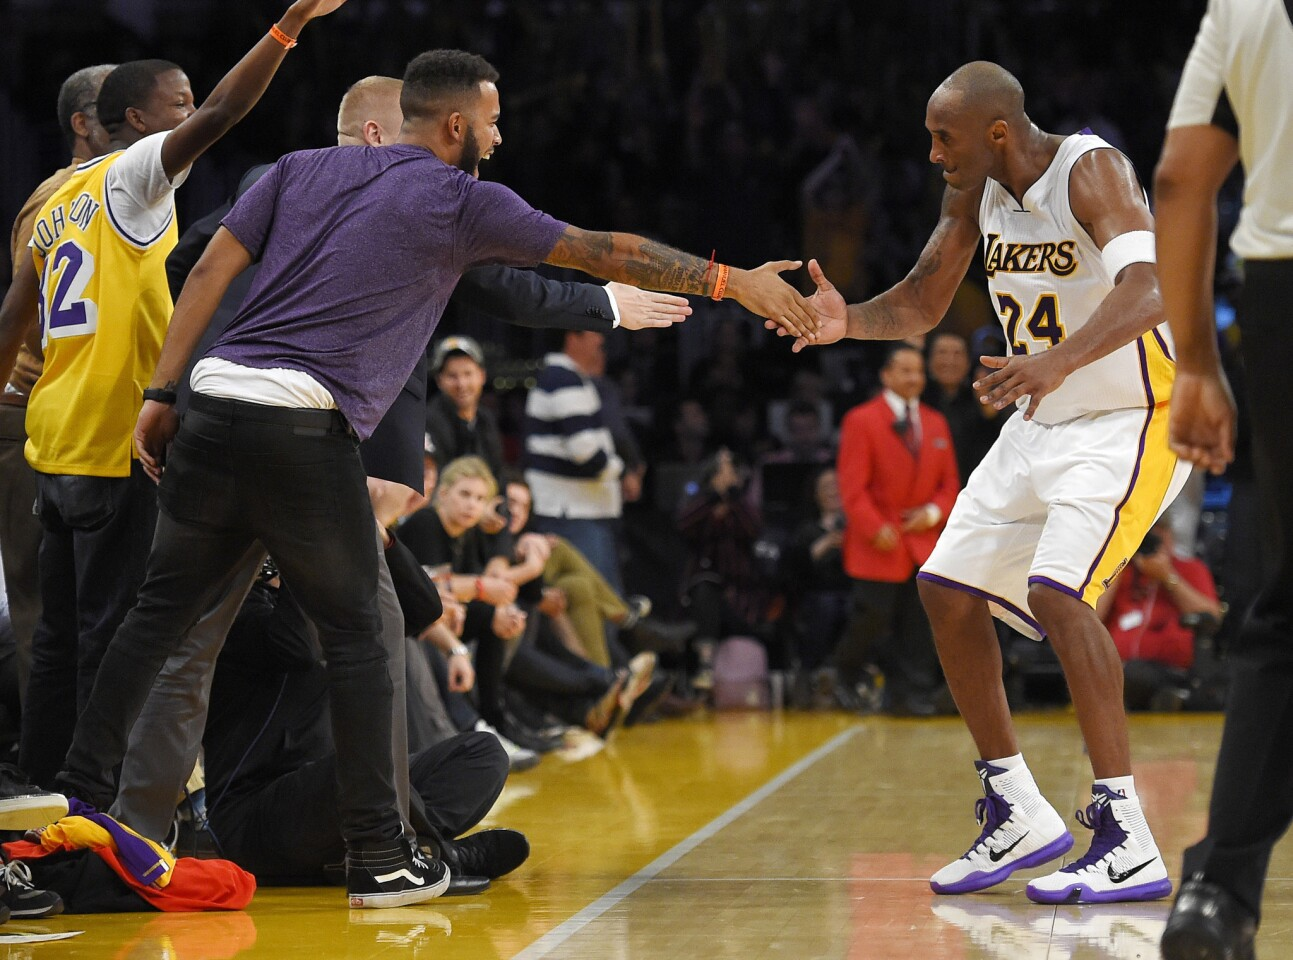 Los Angeles Lakers forward Kobe Bryant, right, celebrates with Anthony Sadler, front left and Spencer Stone, obscured, after hitting a 3-point shot during the second half of an NBA basketball game against the Detroit Pistons, Sunday, Nov. 15, 2015, in Los Angeles. Sadler, and Stone are two of three Americans who helped stop a terrorist attack on a train in France in August. The Lakers won 97-85. (AP Photo/Mark J. Terrill)